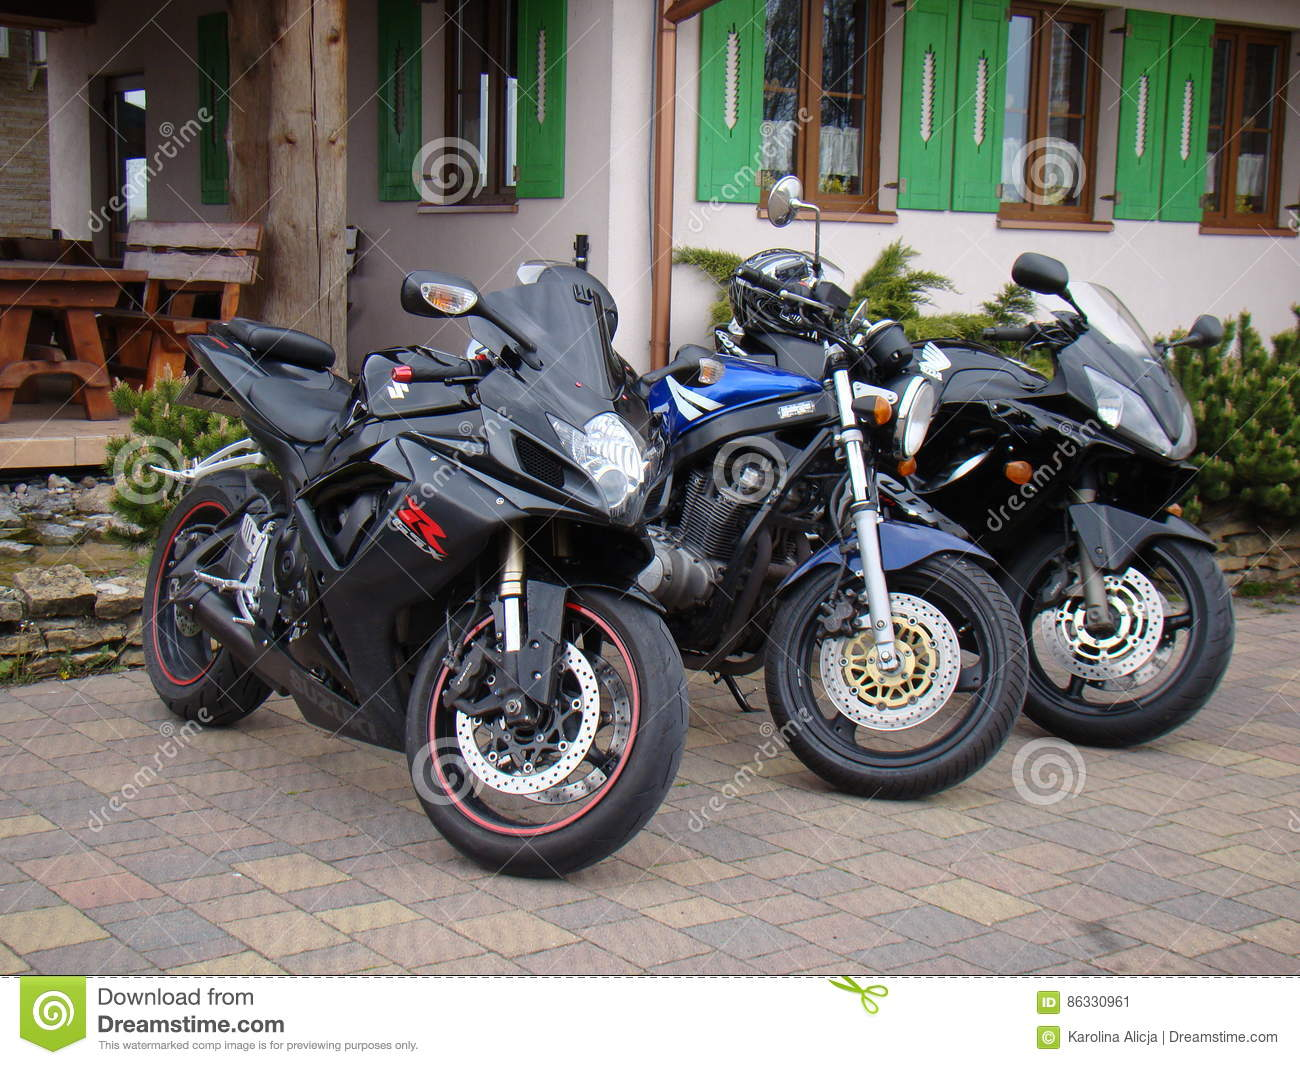 Three Motorcycles Sport Bike Suzuki GS 500 GSX-600 And Honda